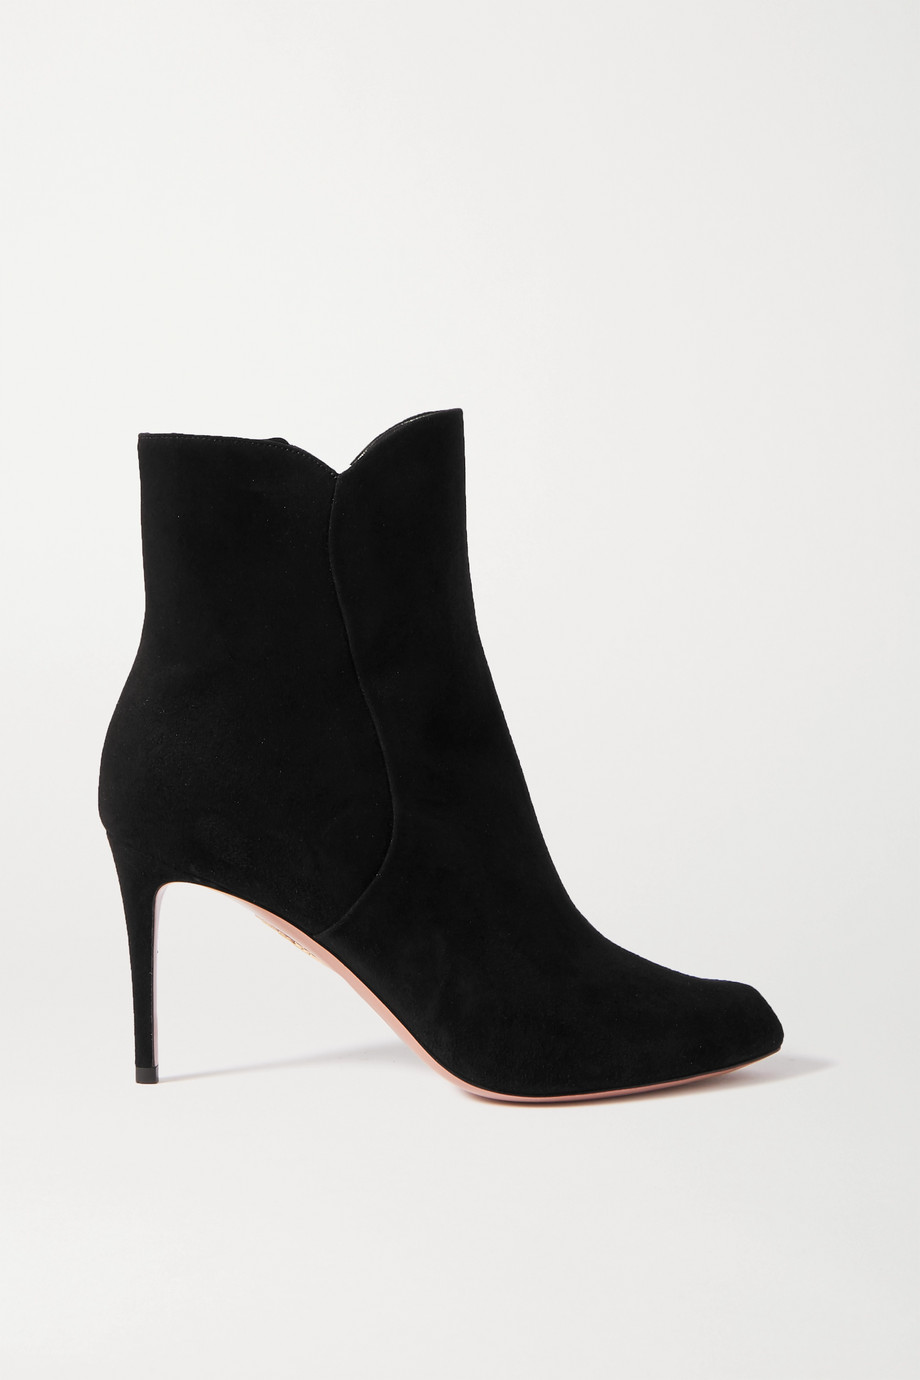 Aquazzura Roya 85 suede ankle boots